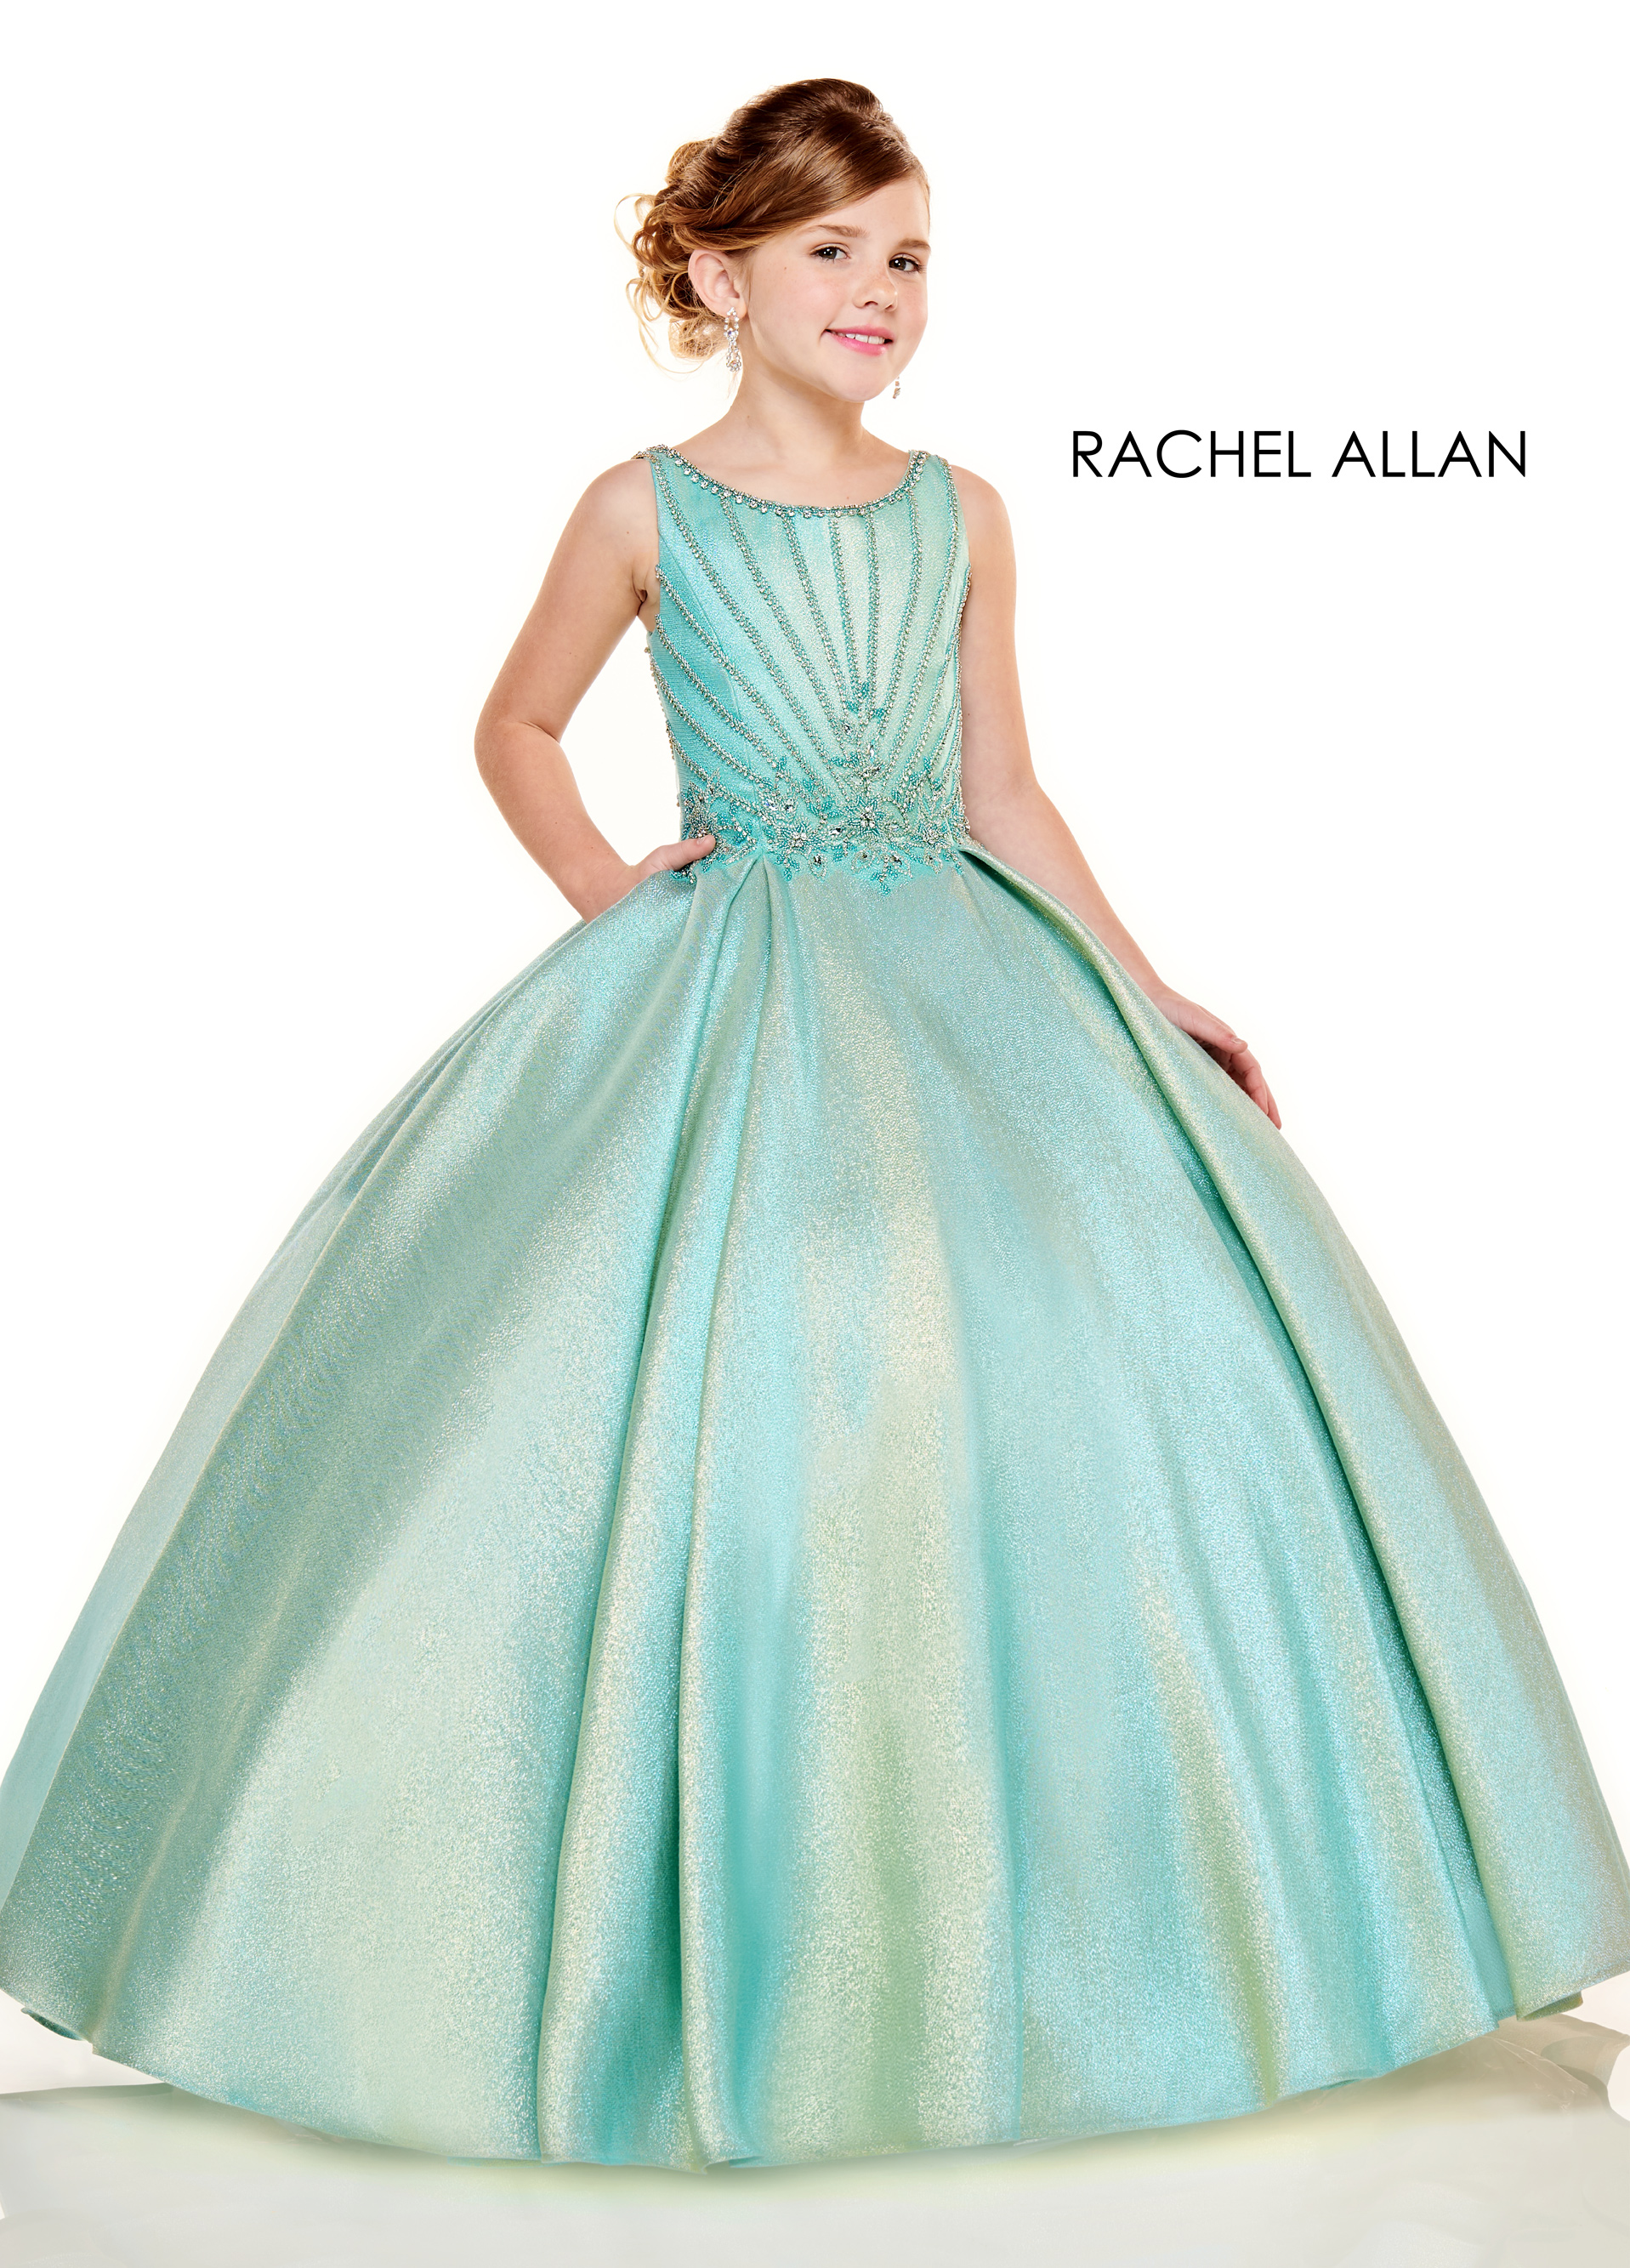 Scoop Neck Ball Gowns Little Girl Pageant Dresses in Aqua Color